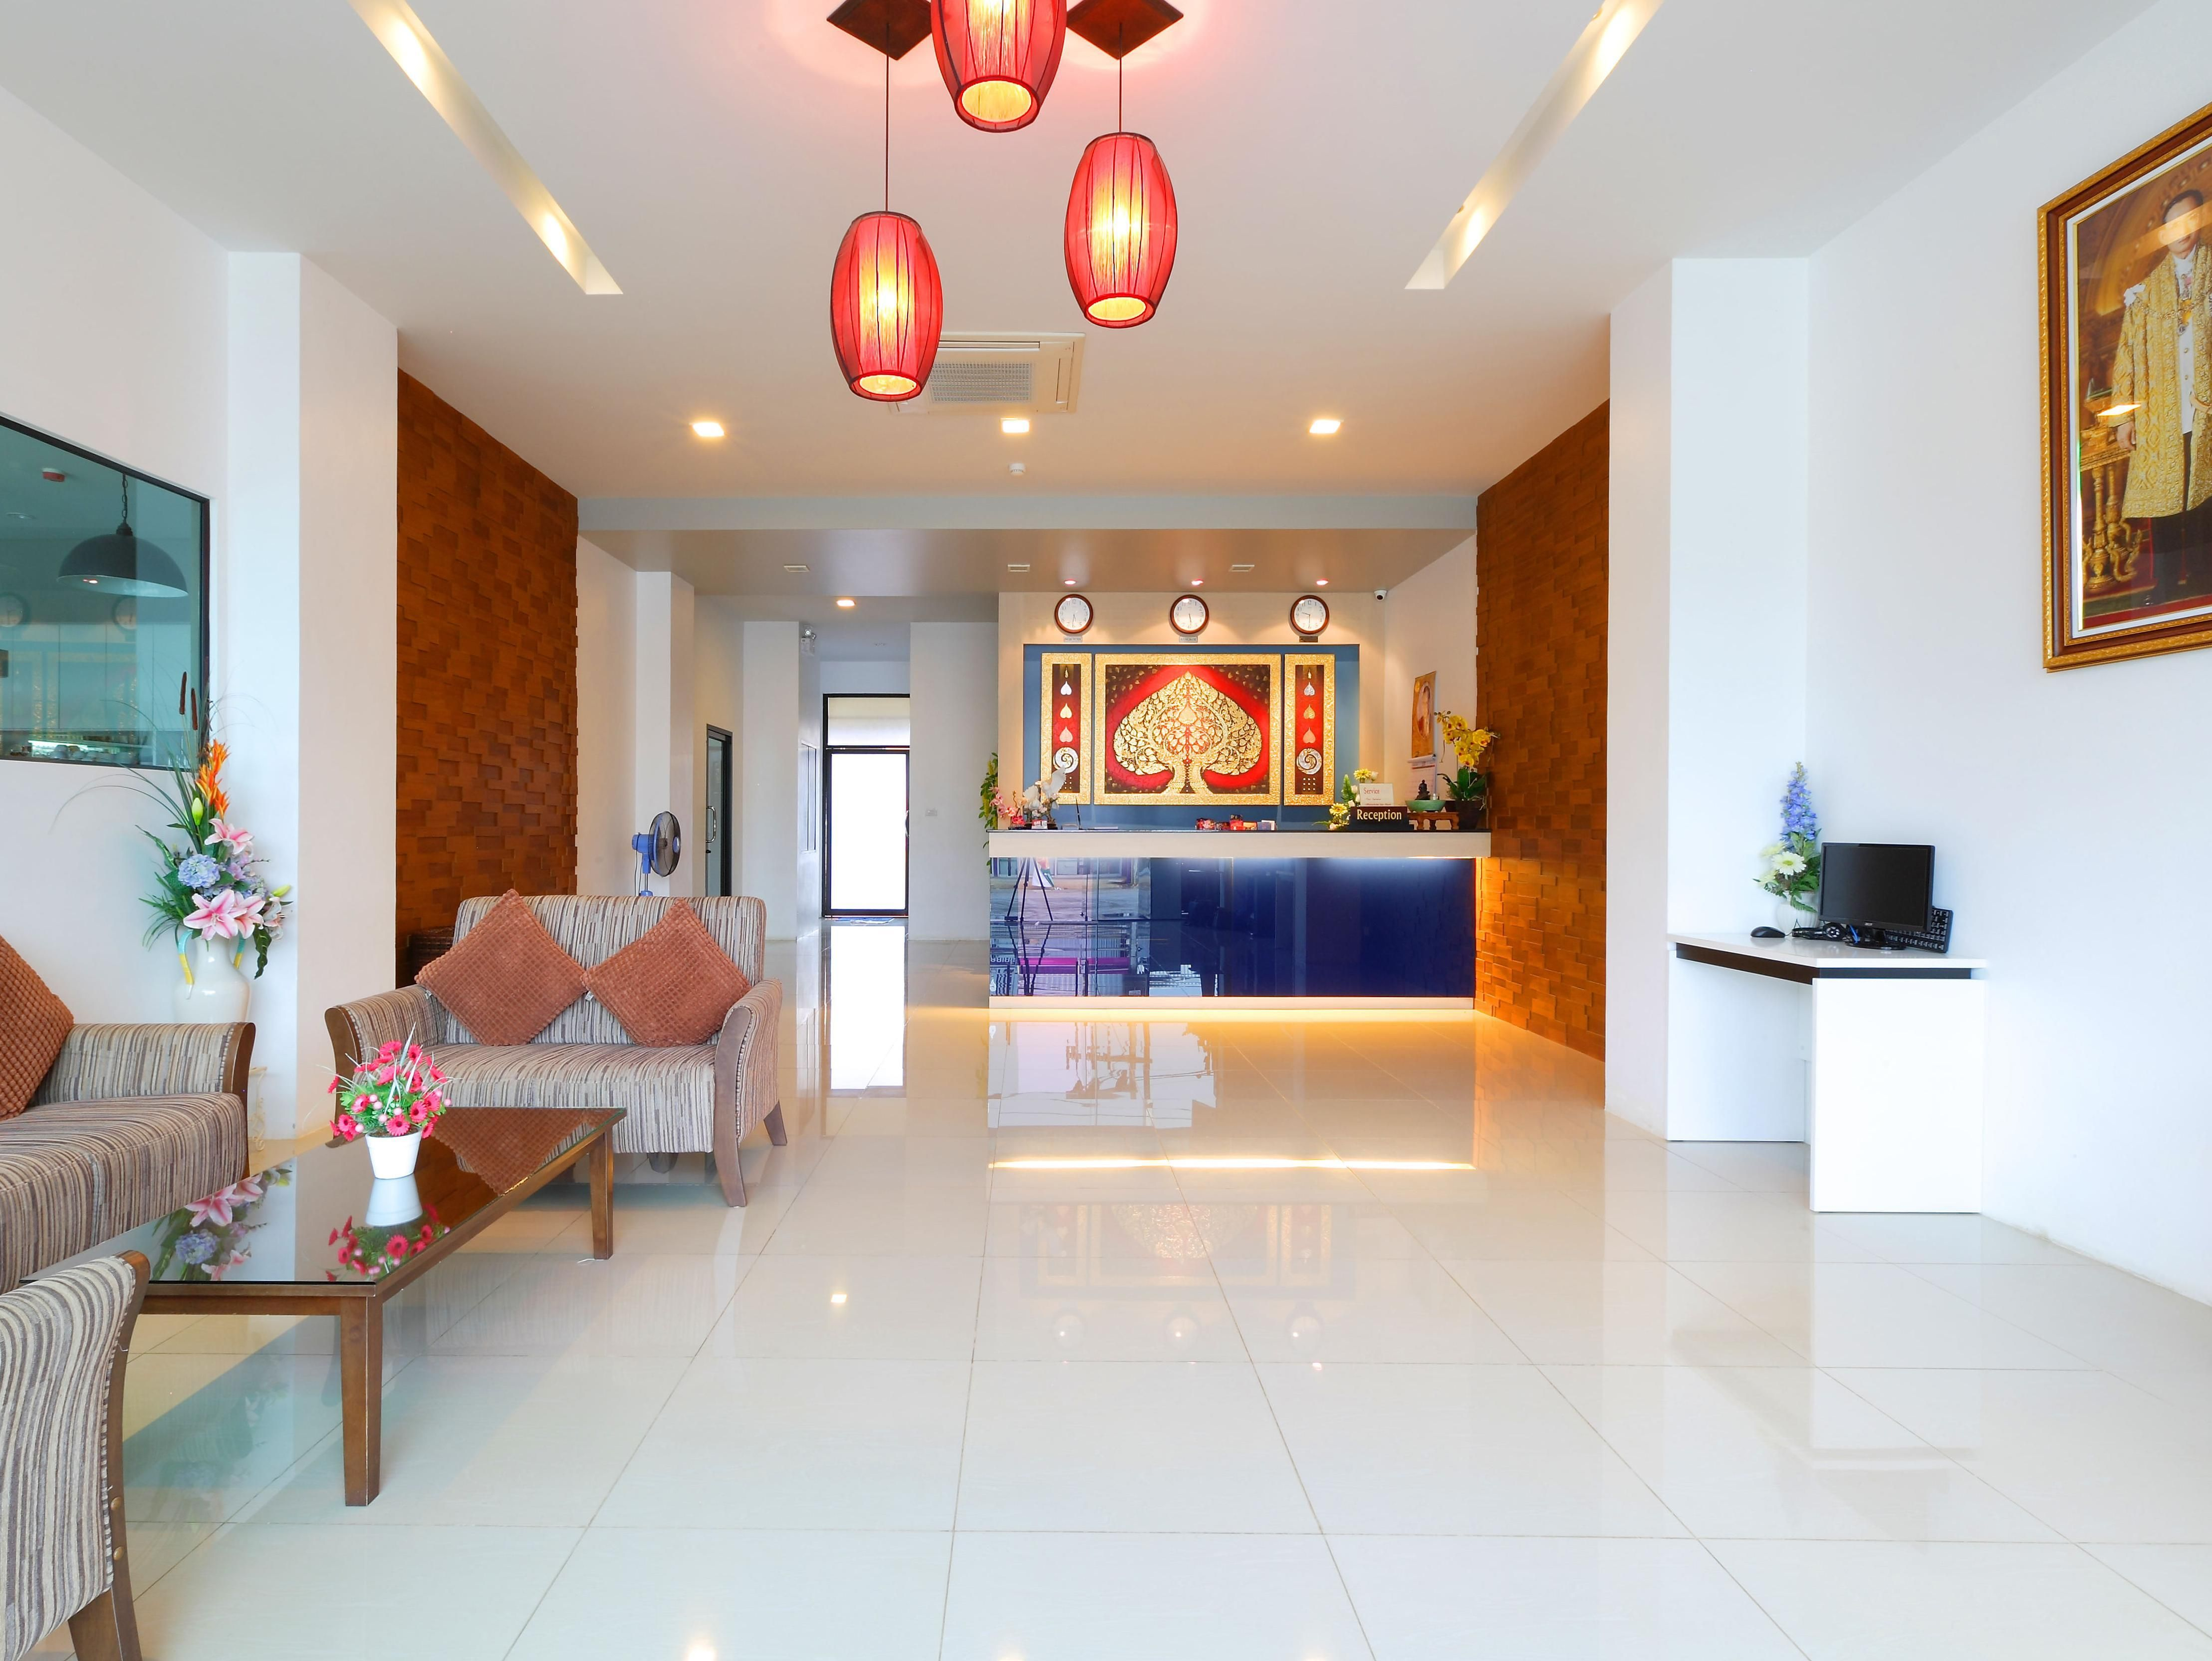 Phuket Sri Boutique Hotel Thailand, Asia Located in Patong, Sri Boutique Hotel is a perfect starting point from which to explore Phuket. Featuring a complete list of amenities, guests will find their stay at the property a comfortable one. All the necessary facilities, including free Wi-Fi in all rooms, convenience store, laundromat, 24-hour front desk, 24-hour room service, are at hand. Some of the well-appointed guestrooms feature television LCD/plasma screen, clothes rack, ...